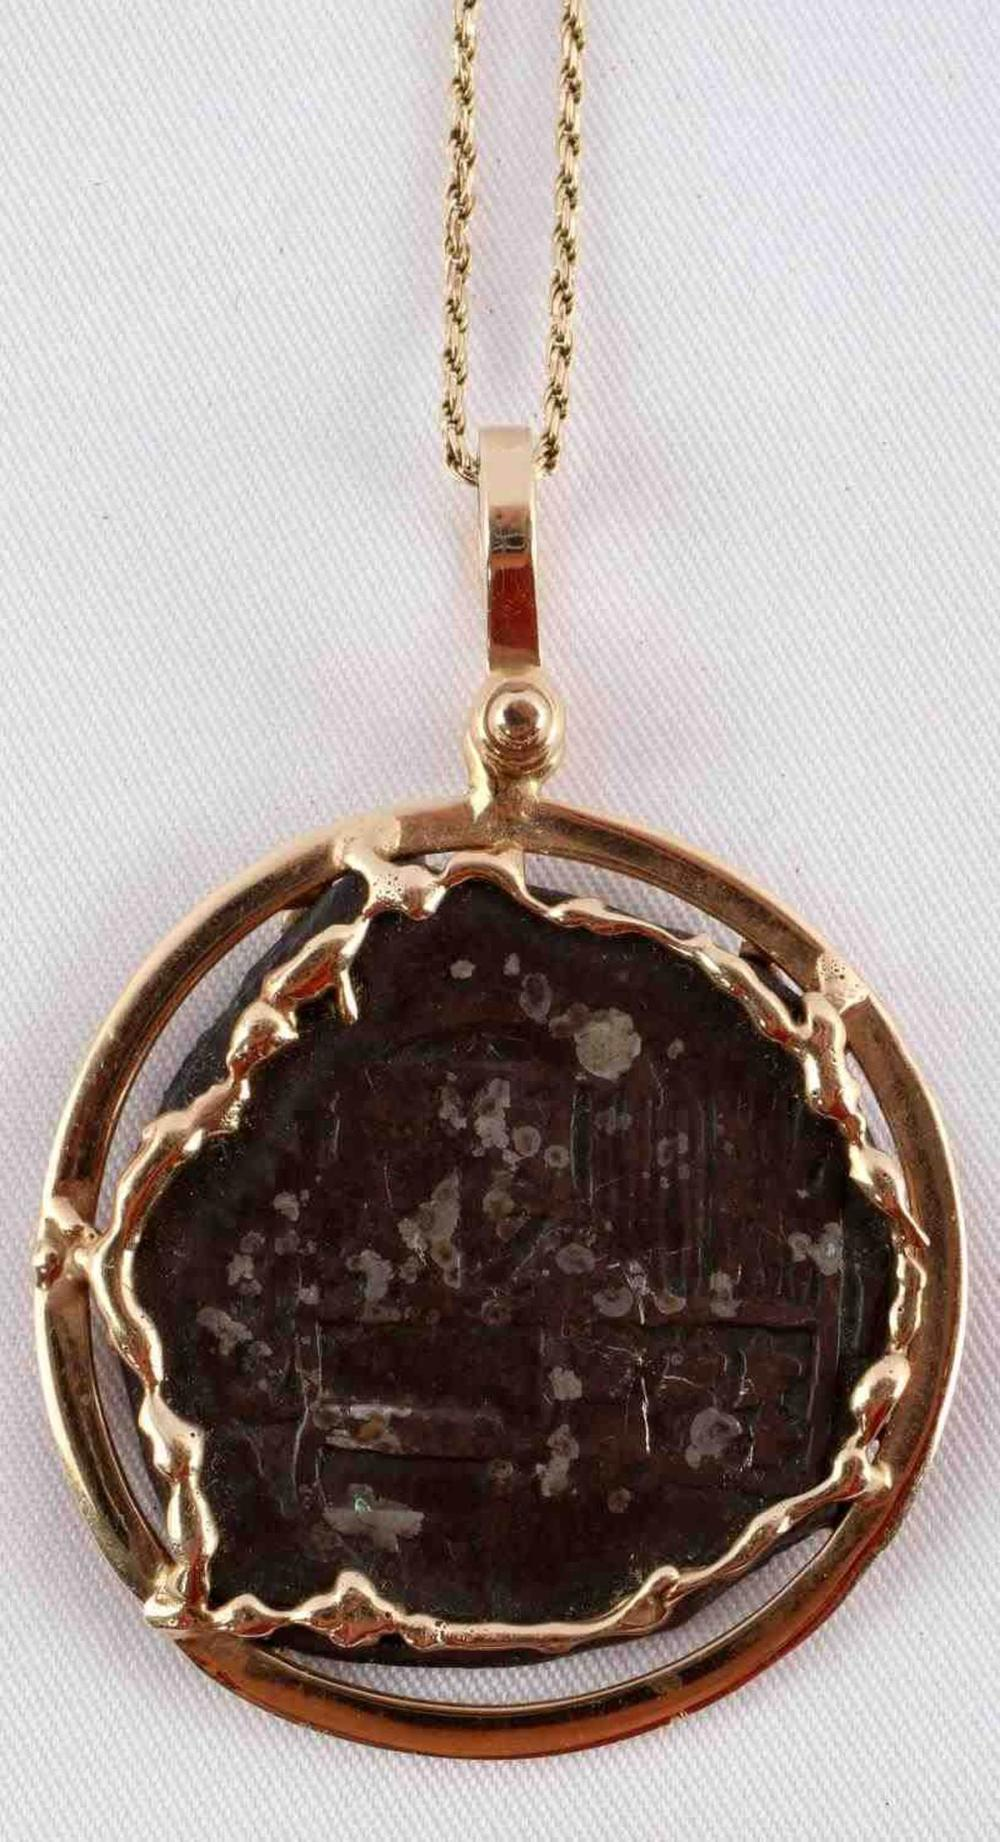 SHIPWRECK 4 REALE COIN AND 14KT PENDANT W NECKLACE